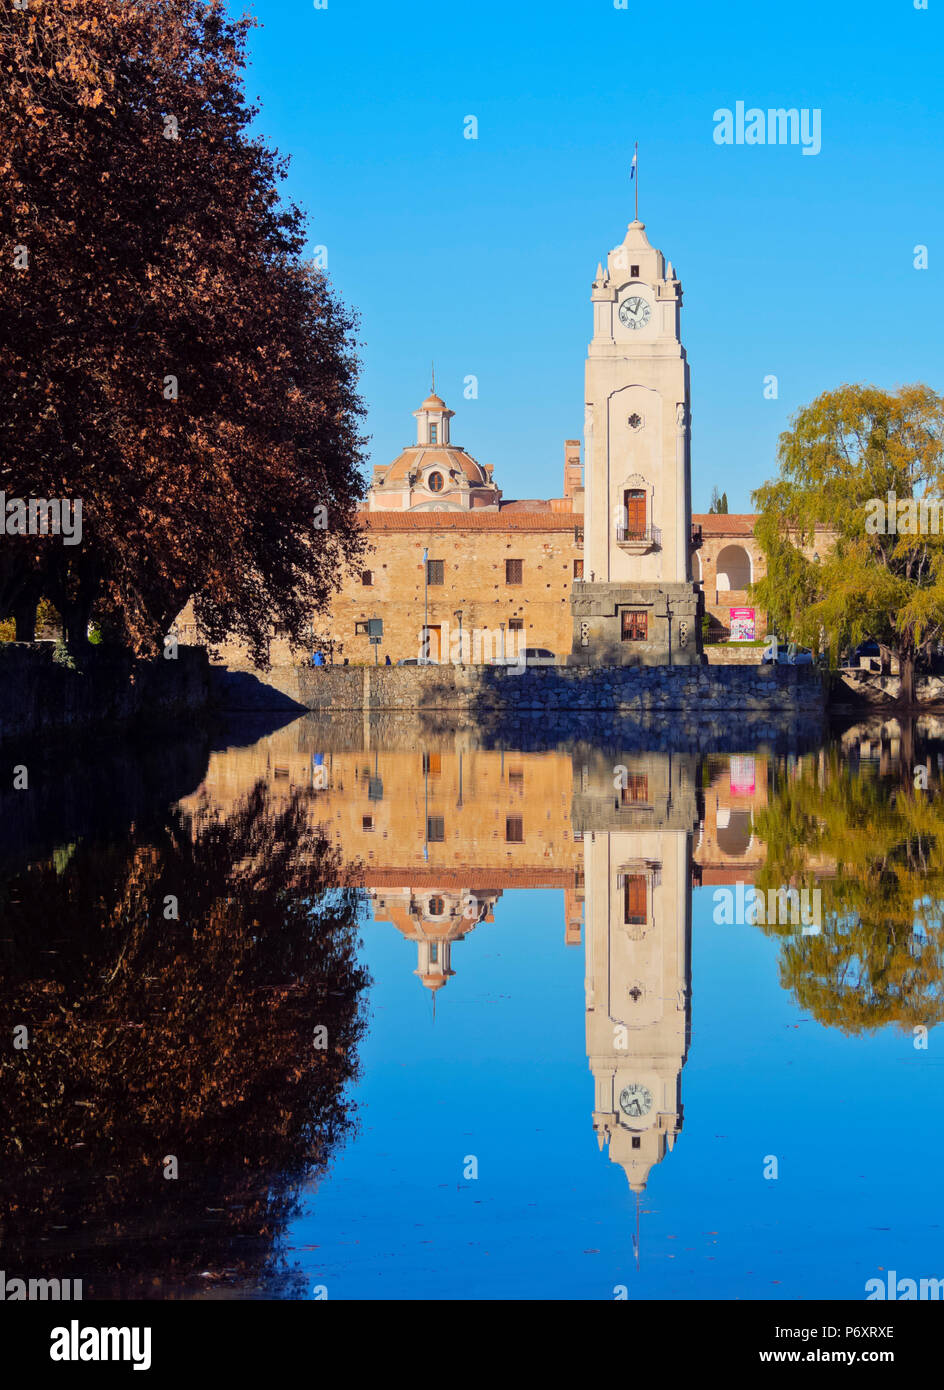 Argentina, Cordoba Province, Alta Gracia, View of El Tajamar Water Reservoir build by Jesuits, the Clock Tower and the Jesuit Estancia. - Stock Image